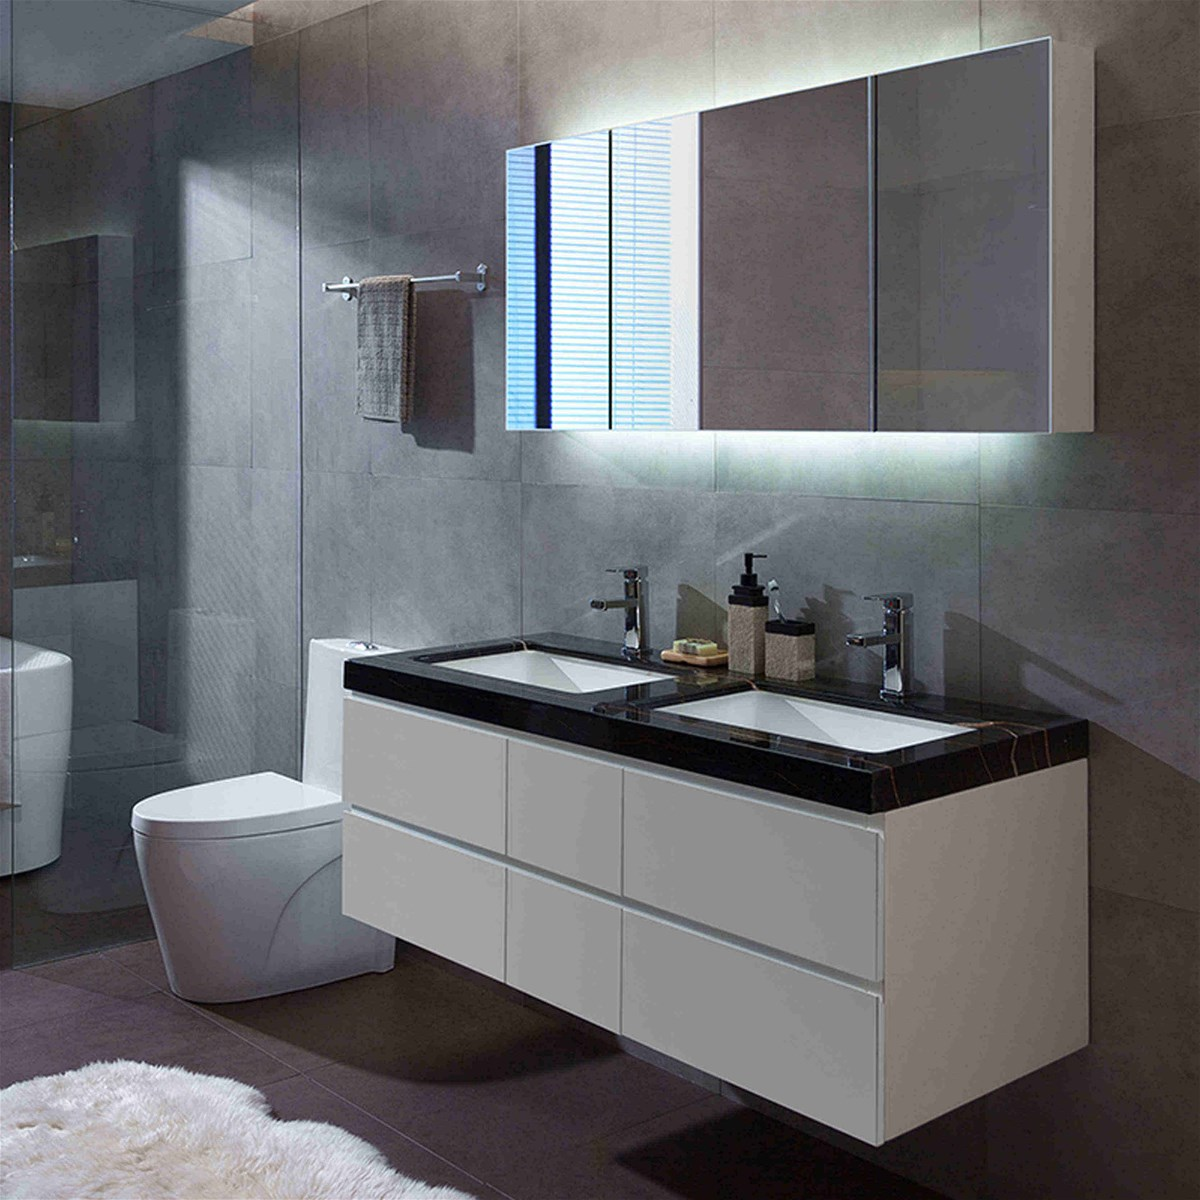 Contemporary Bathroom Vanities Kitchen Cabinets Cabinetry